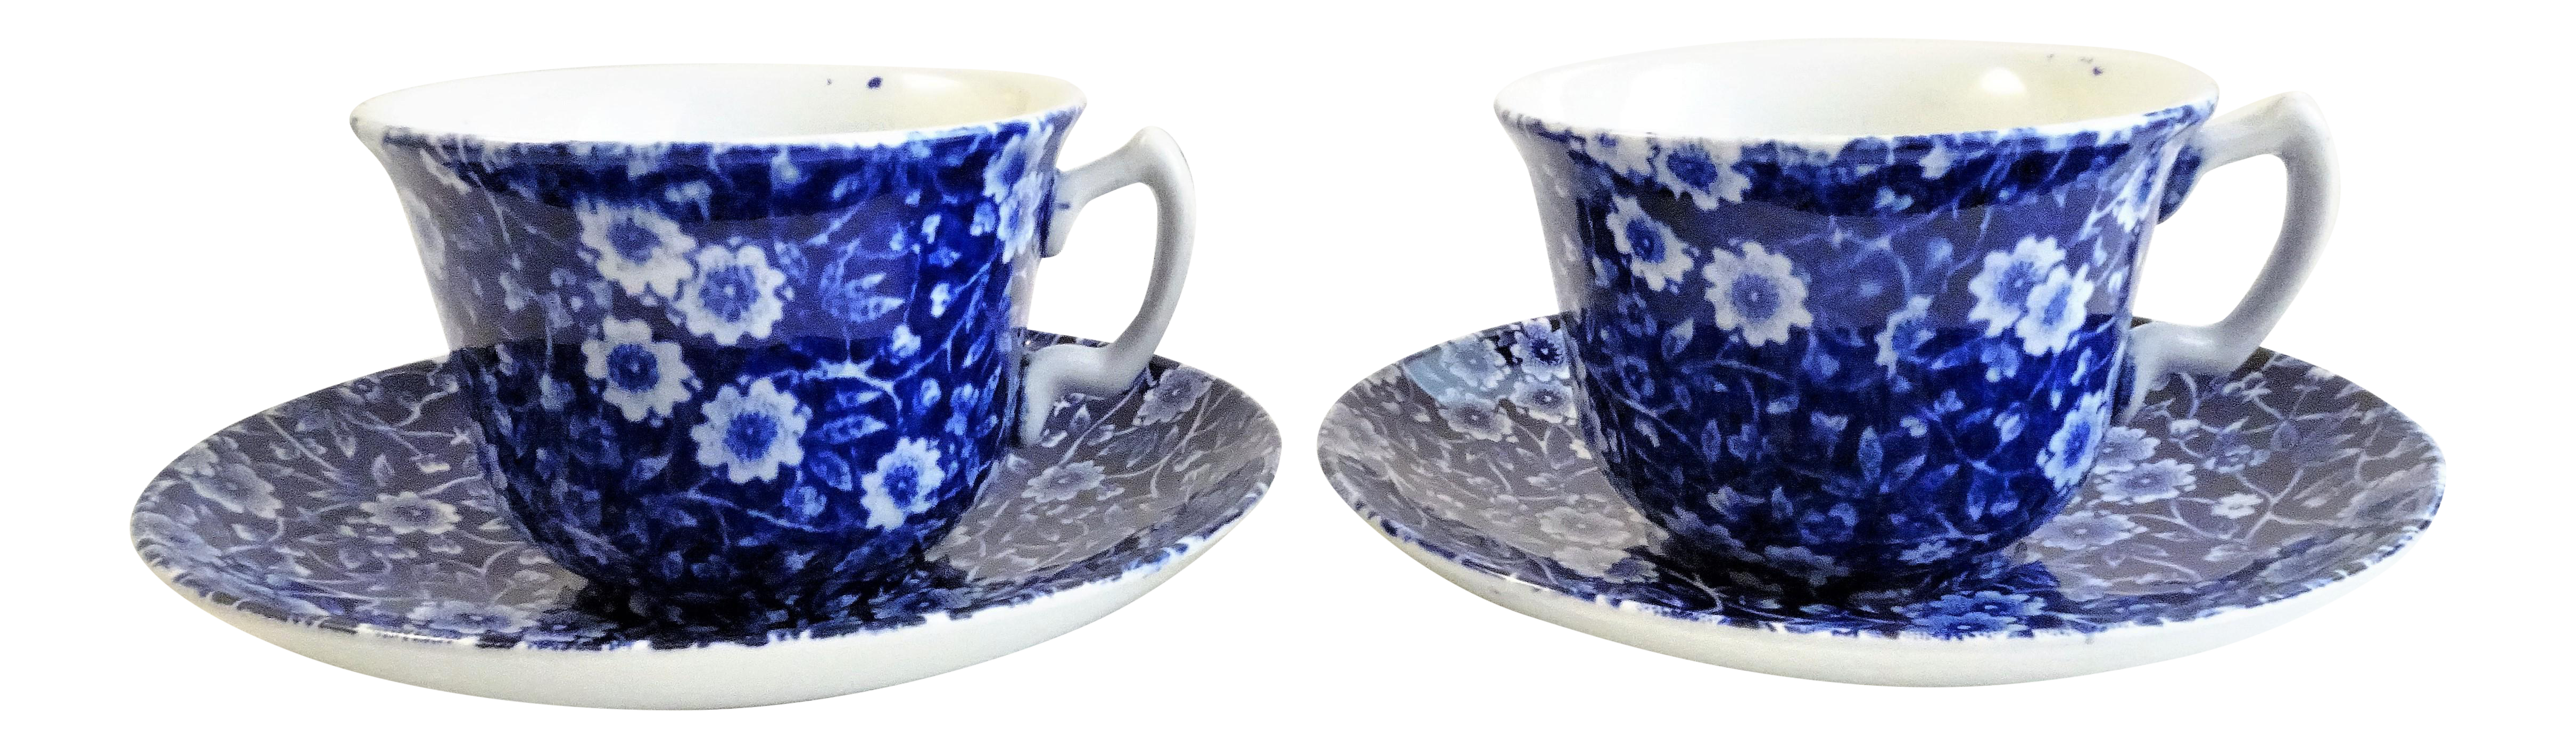 Staffordshire Calico Cups \u0026 Saucers Made in England - A Pair - Image 1 of  sc 1 st  Chairish & Staffordshire Calico Cups \u0026 Saucers Made in England - A Pair | Chairish